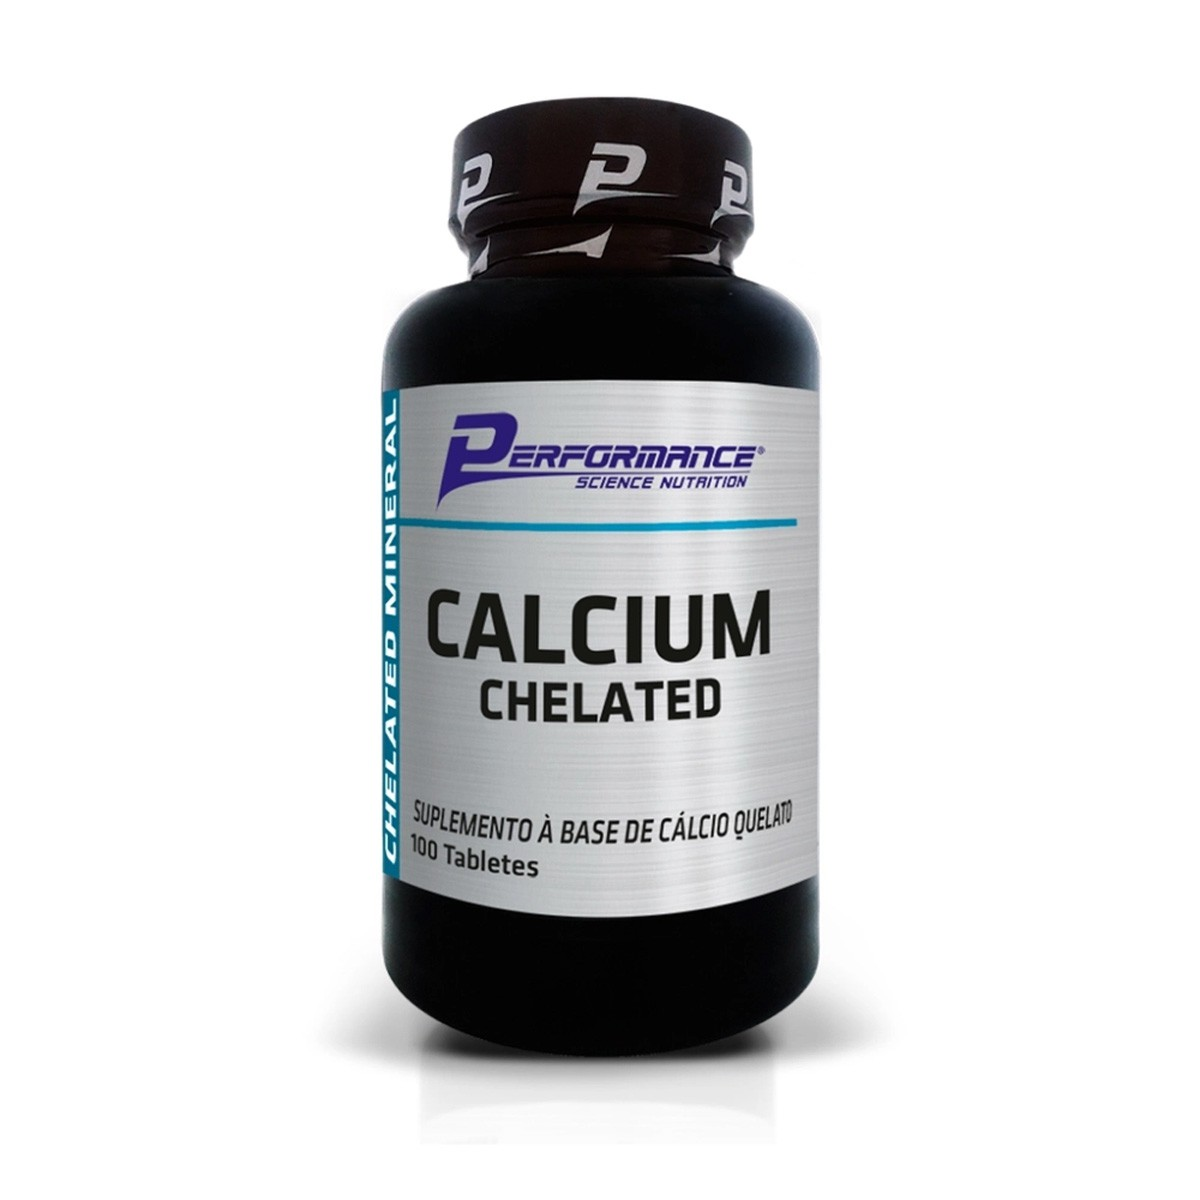 CALCIUM CHELATED 100 TBS PERFORMANCE